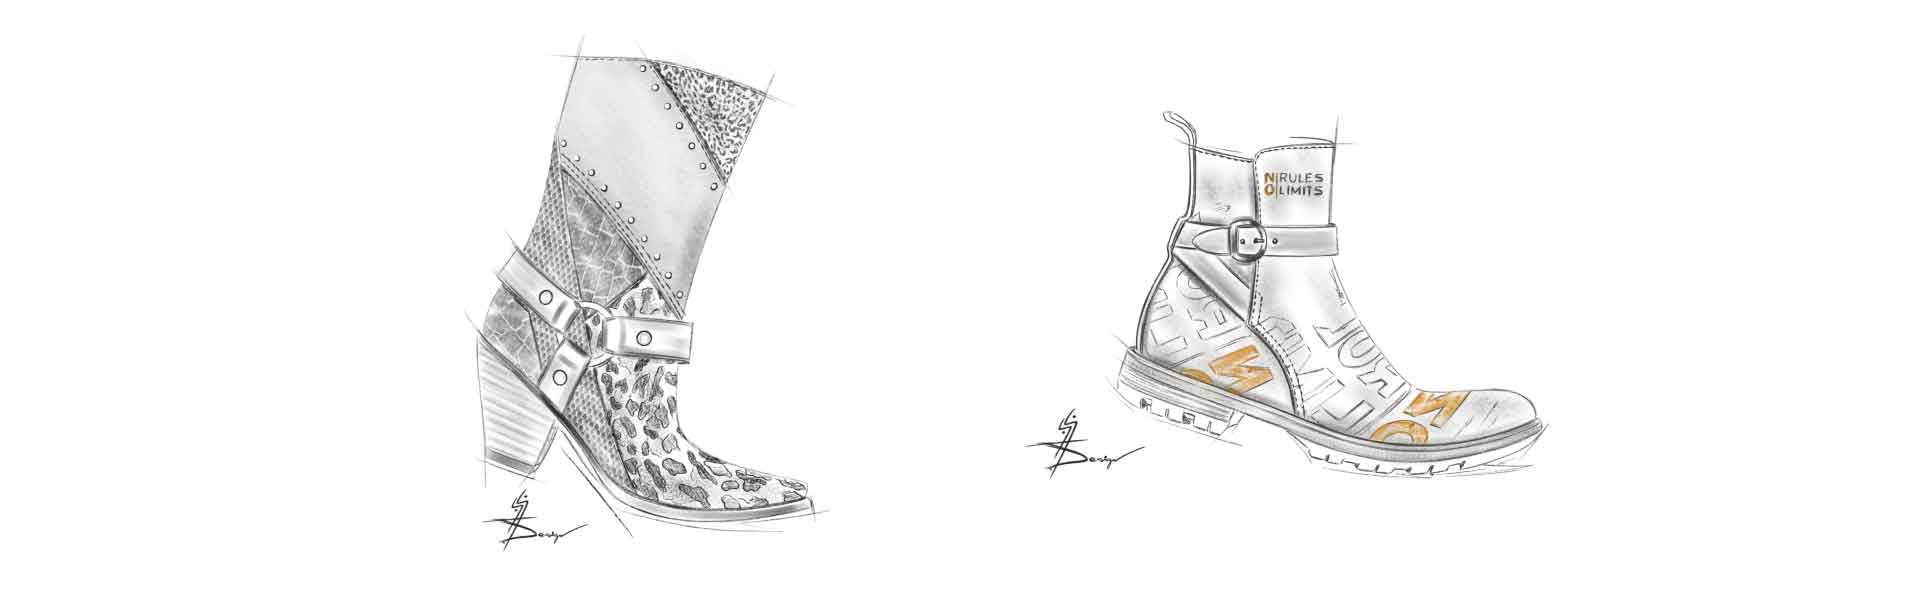 Footwear Trend FW20 Unconcluded Patchwork - Footwear Sketches